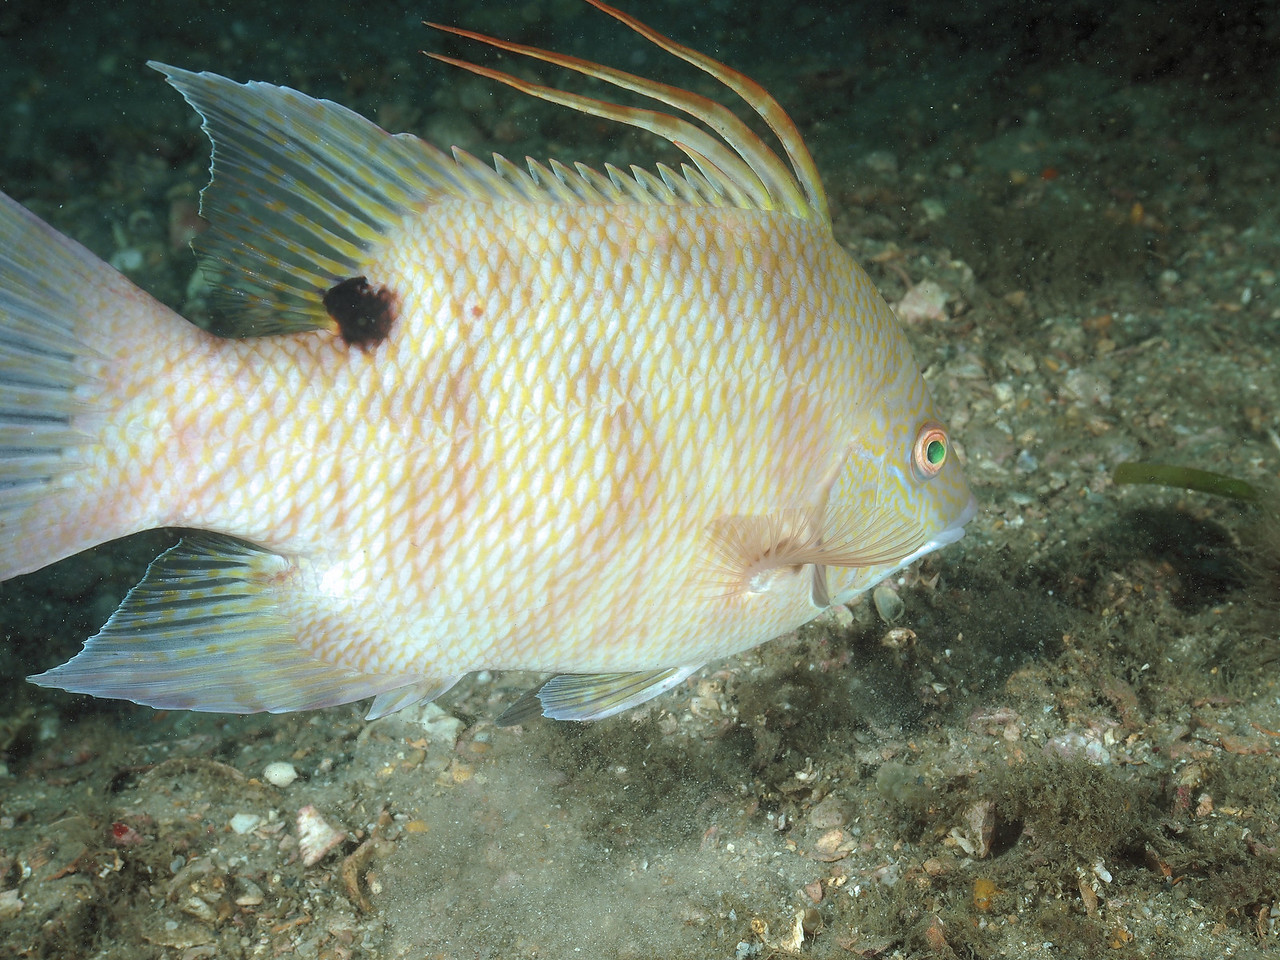 Hogfish at the Blue Heron Bridge